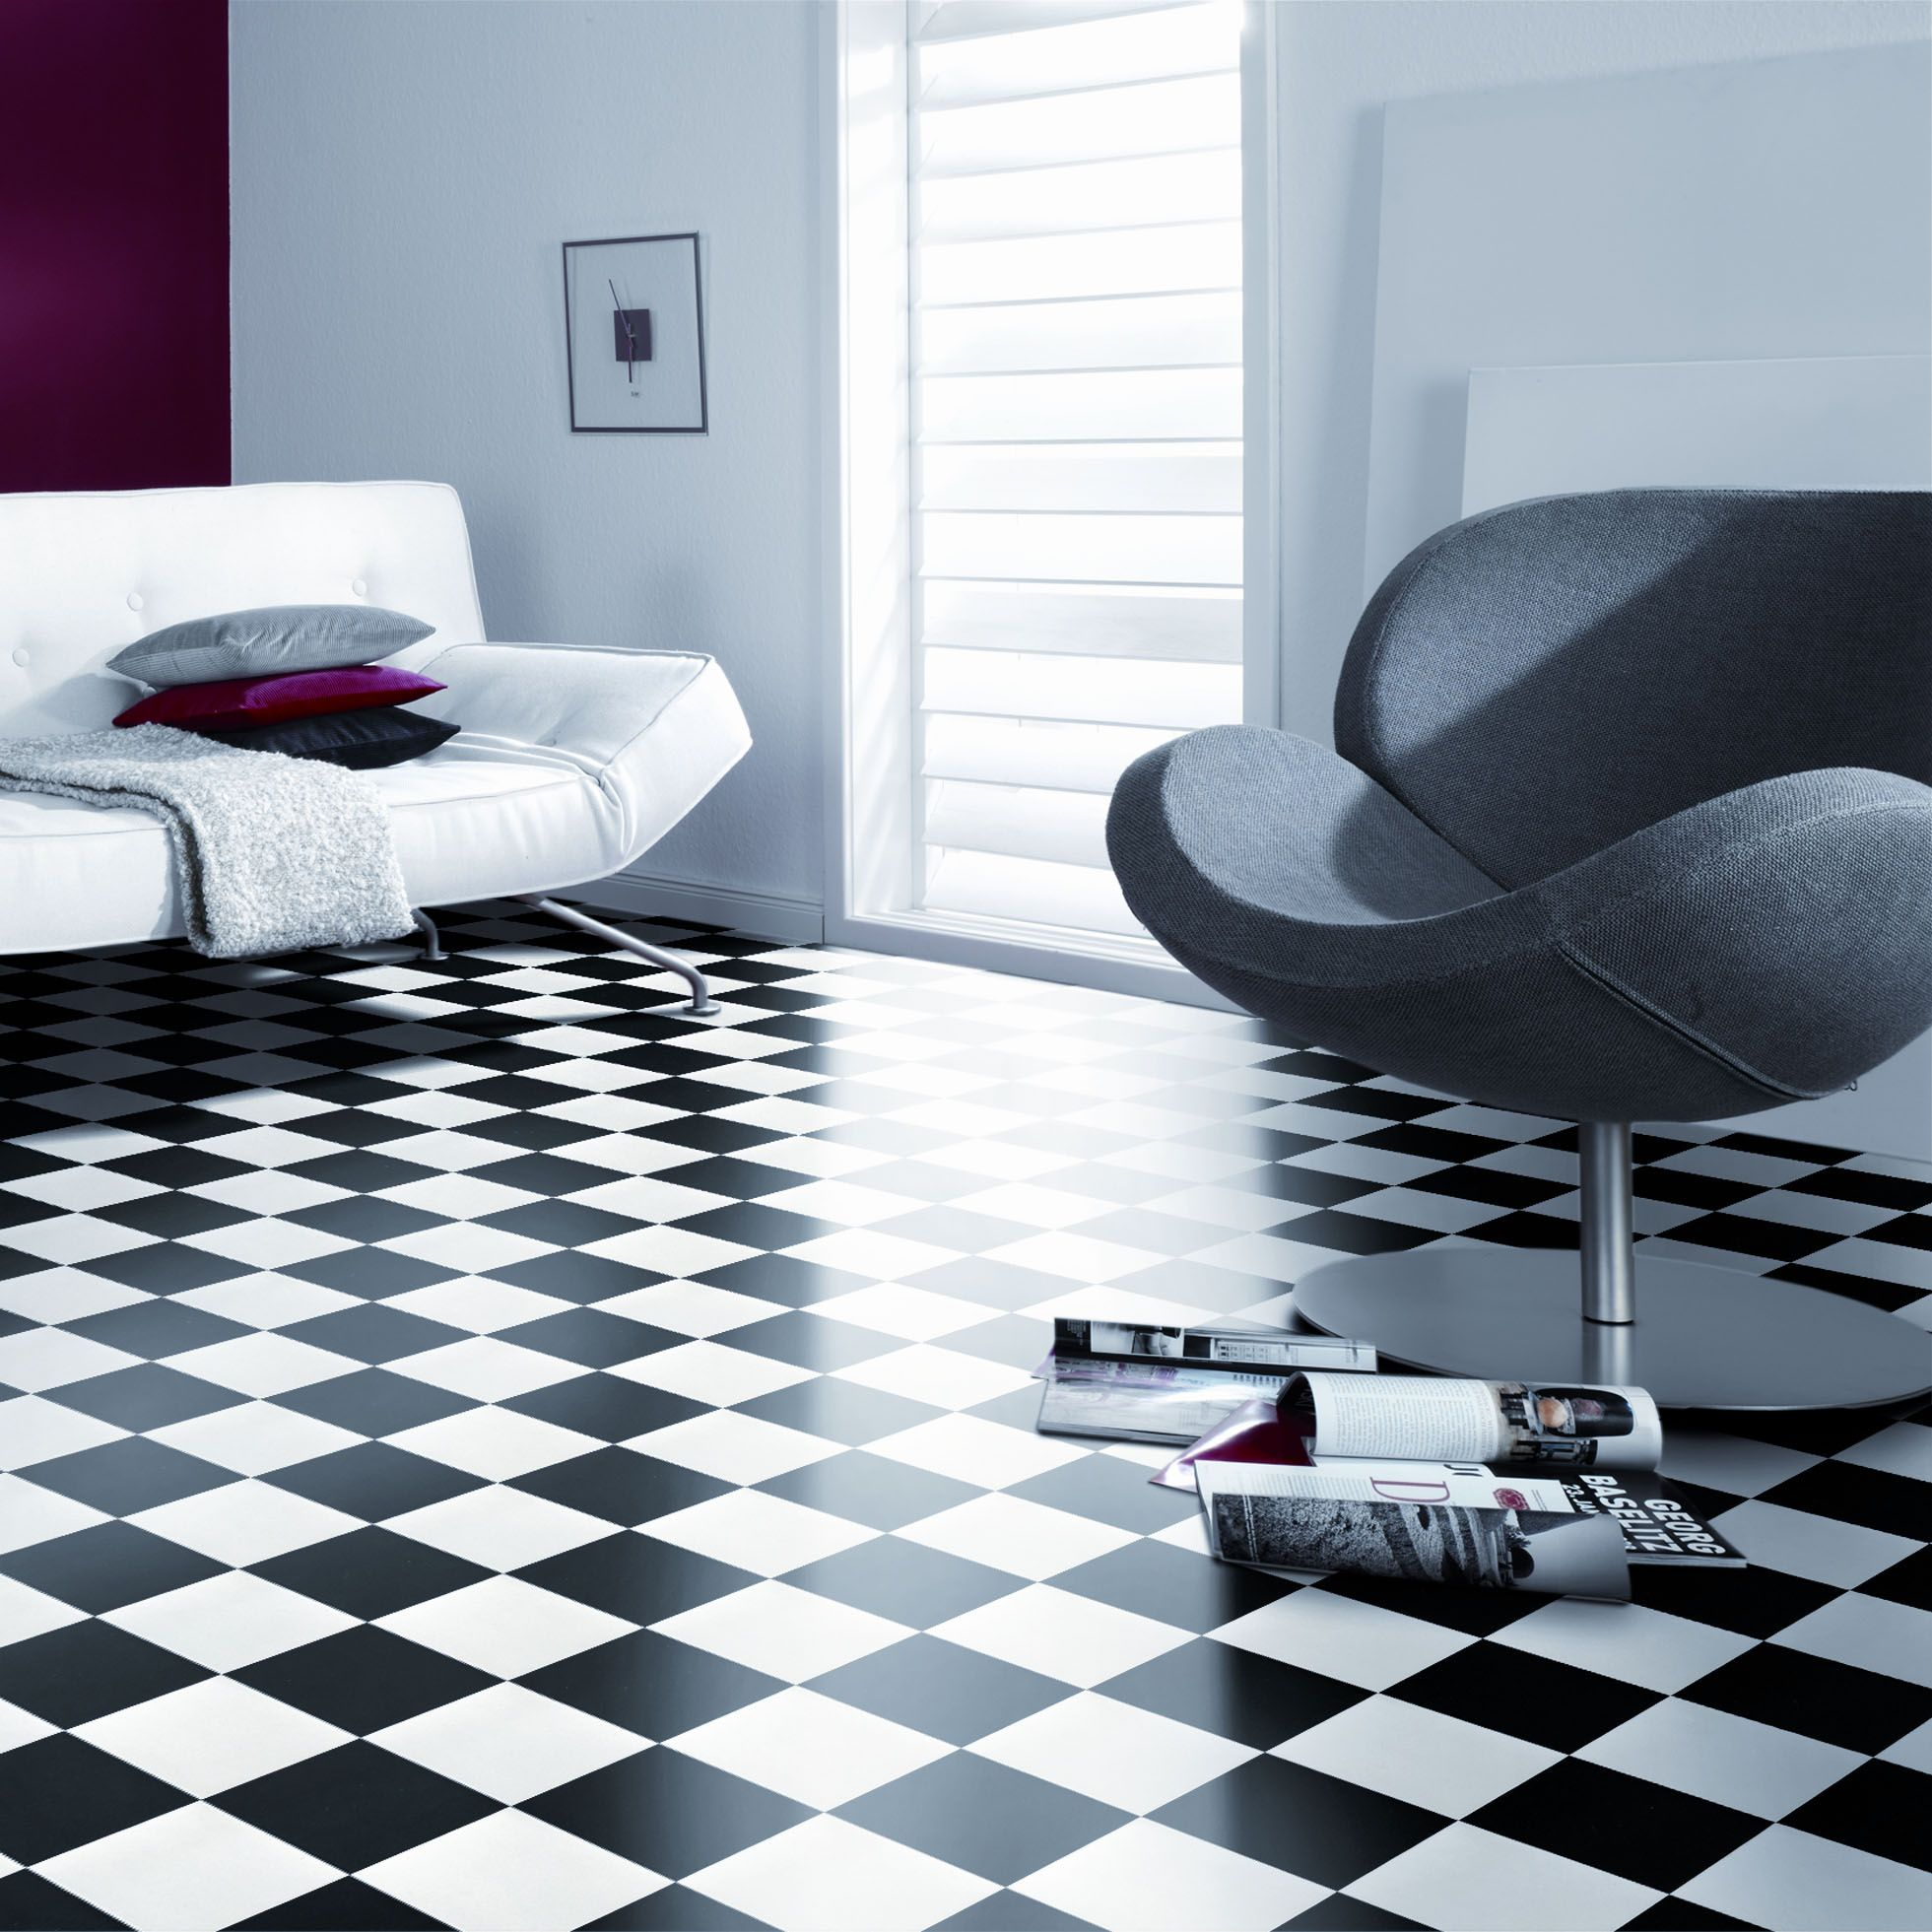 Texline Essence Damier Black and White gerflor design